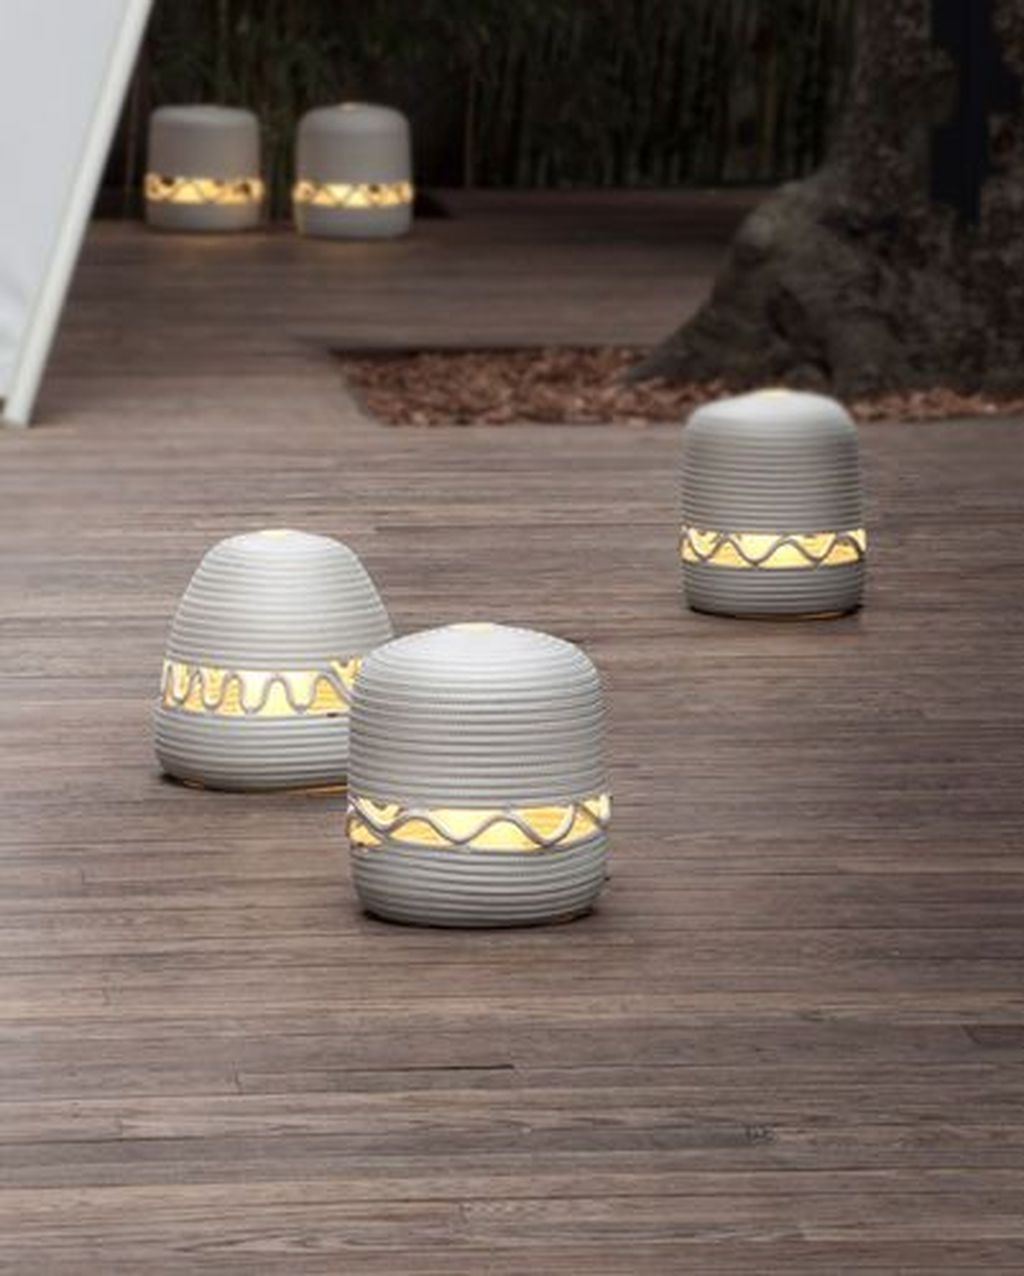 Inspiring Garden Lamps Ideas For Outdoors Decor 11